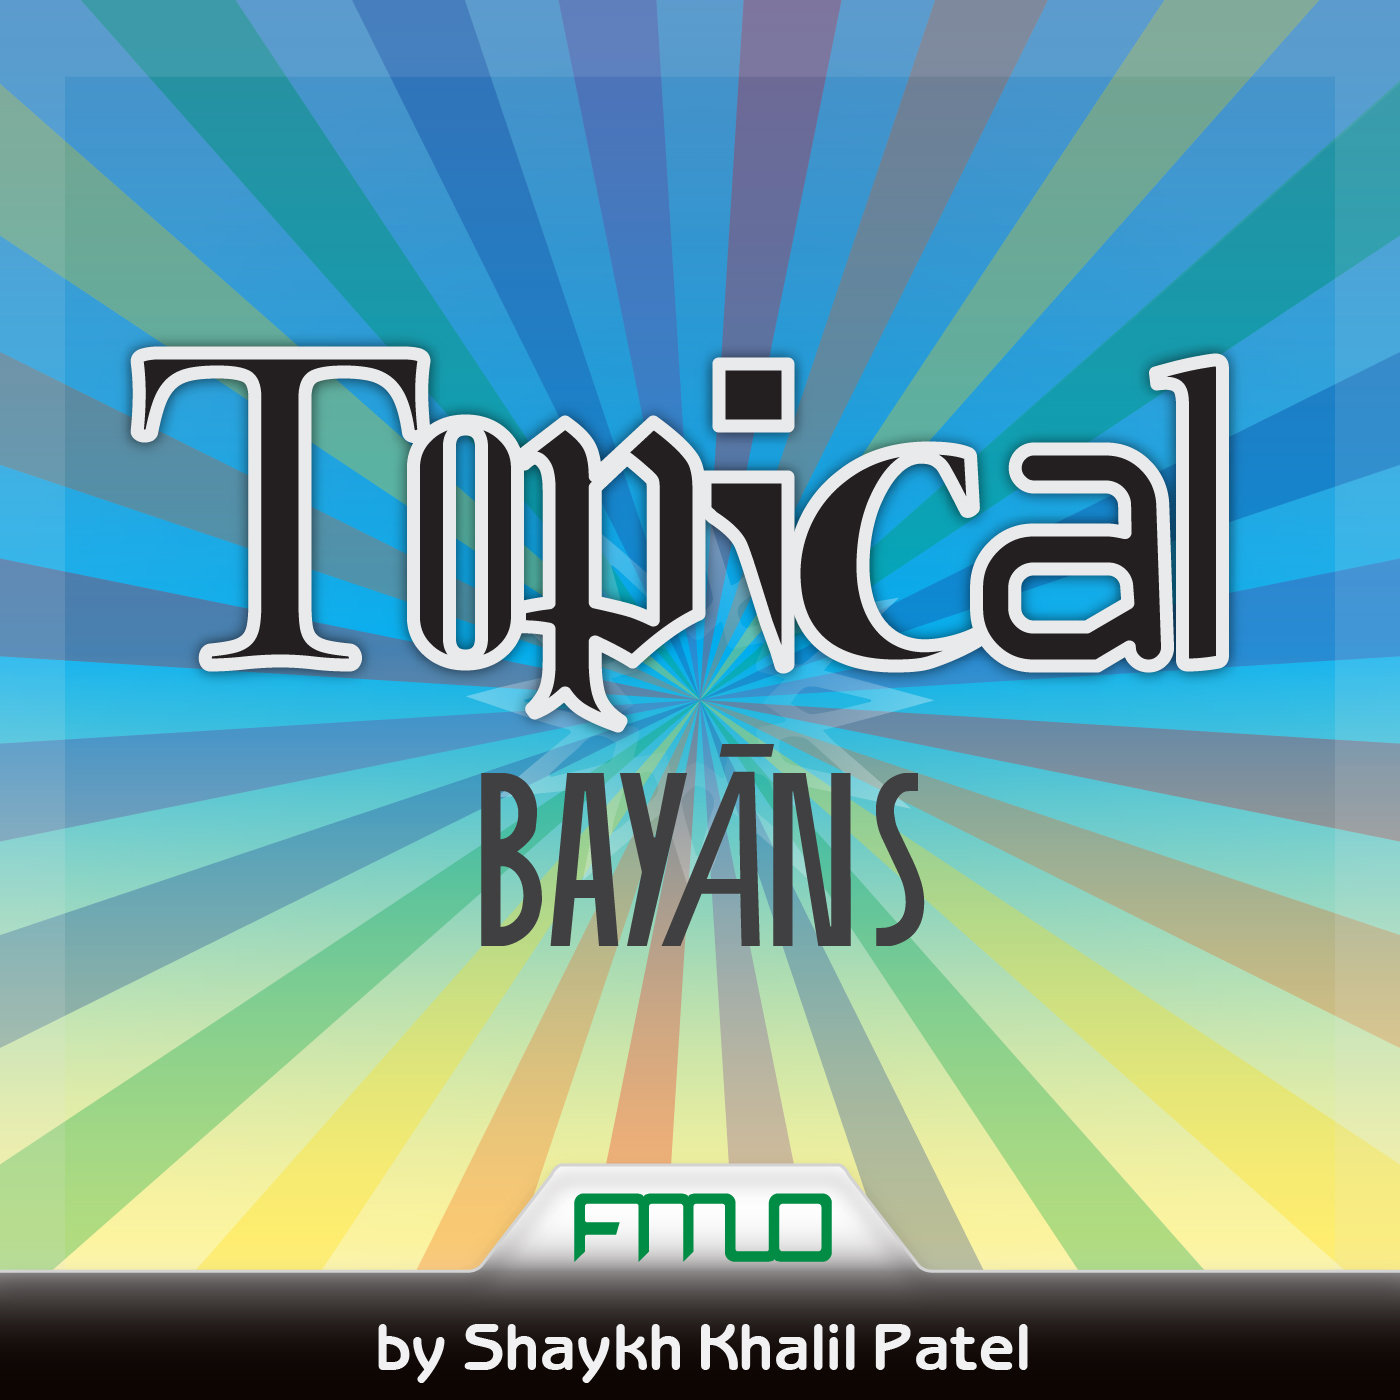 Topical lectures with Shaykh Khalil Patel